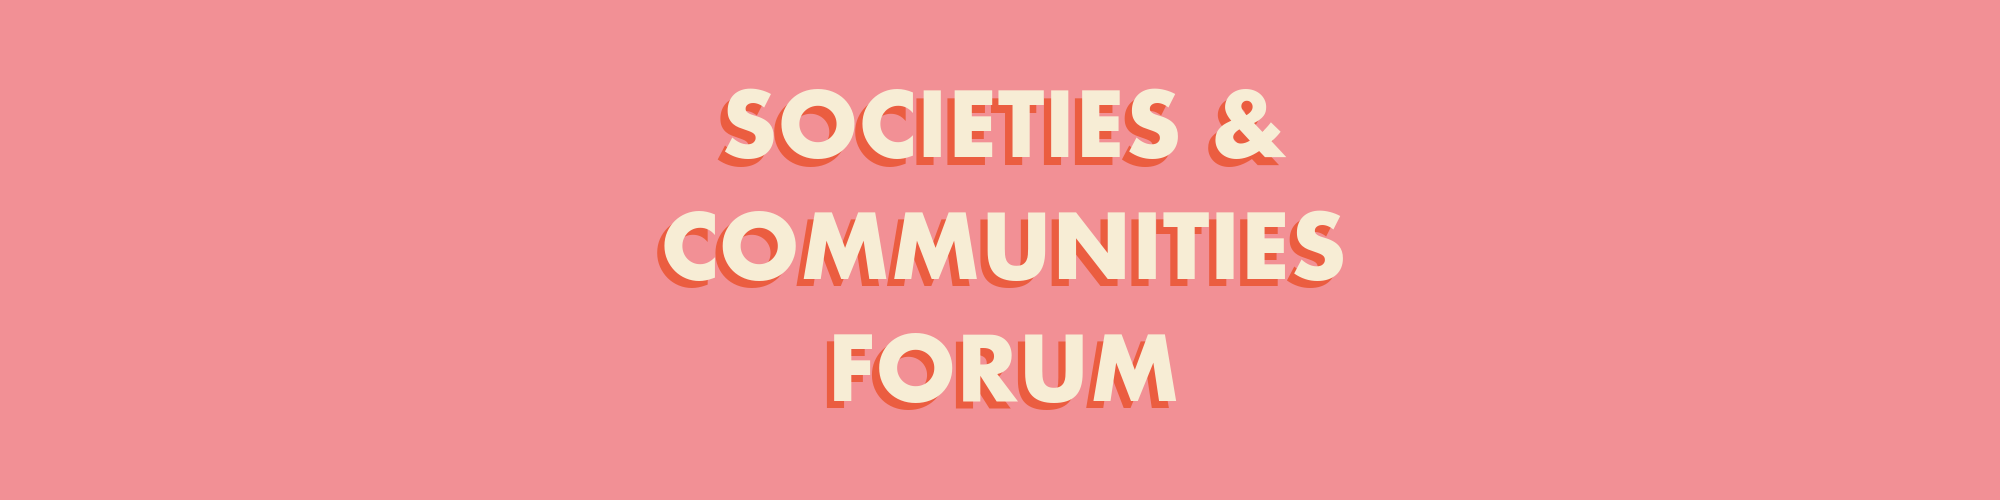 Societies & Communities Forum